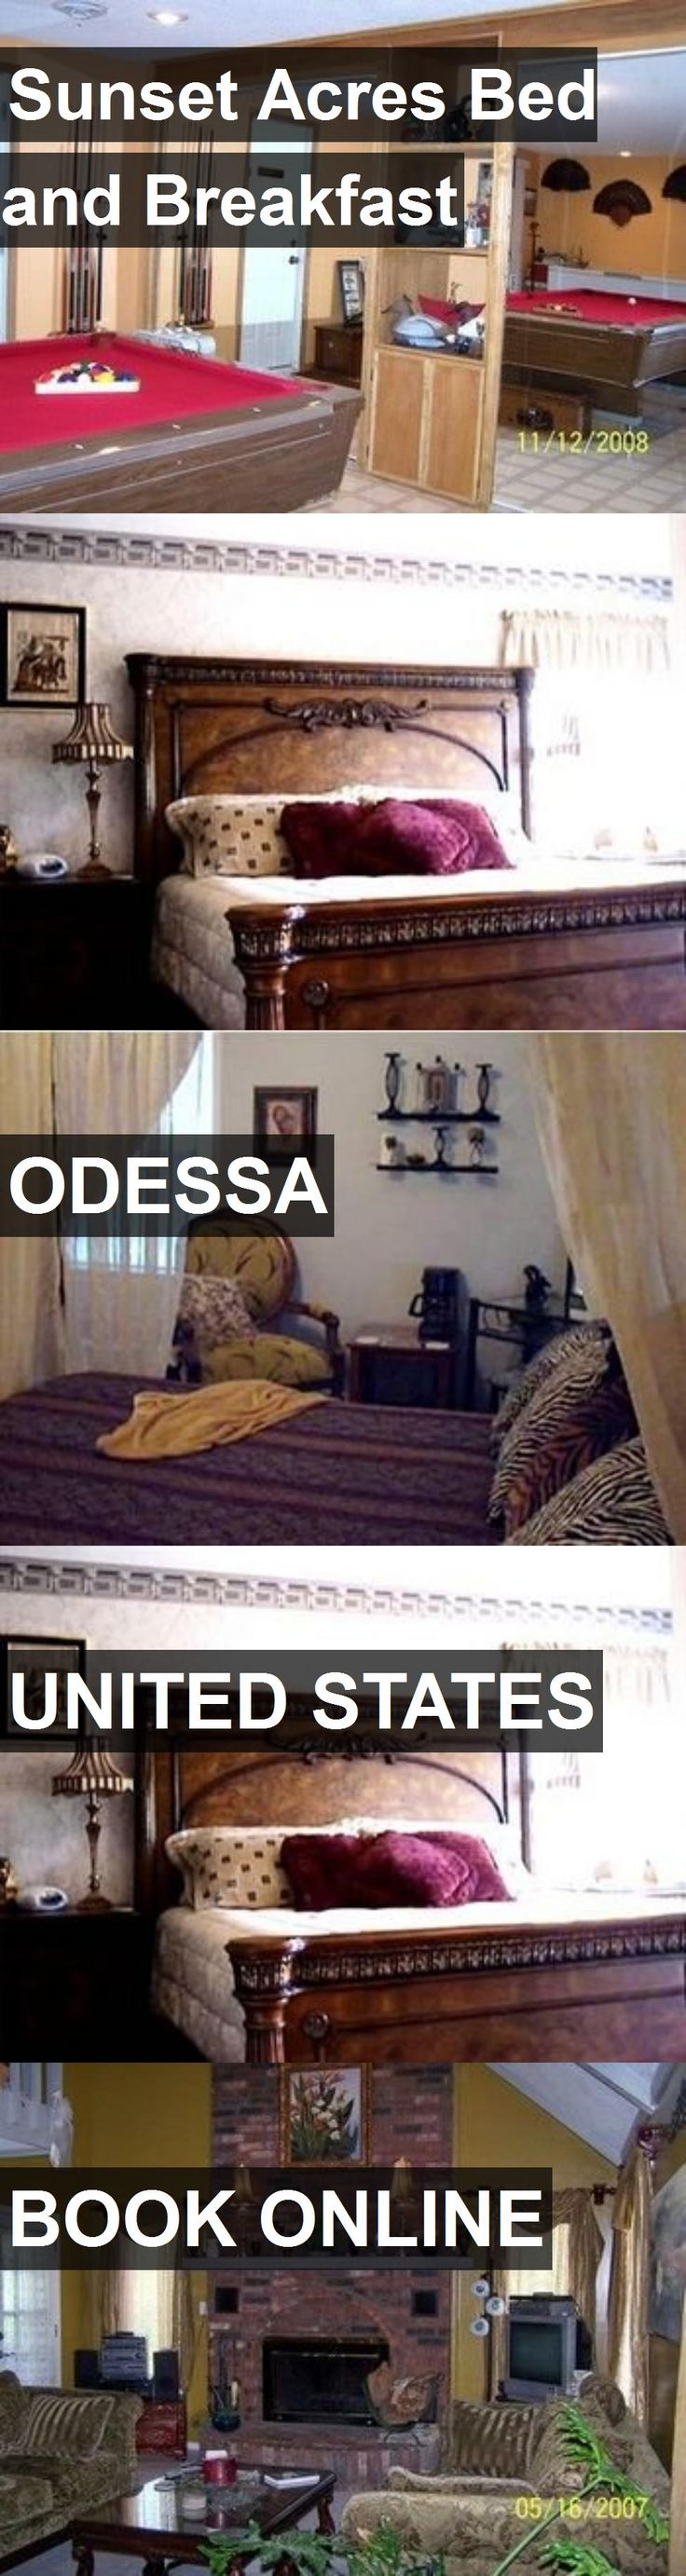 Hotel Sunset Acres Bed and Breakfast in Odessa, United States. For more information, photos, reviews and best prices please follow the link. #UnitedStates #Odessa #SunsetAcresBedandBreakfast #hotel #travel #vacation